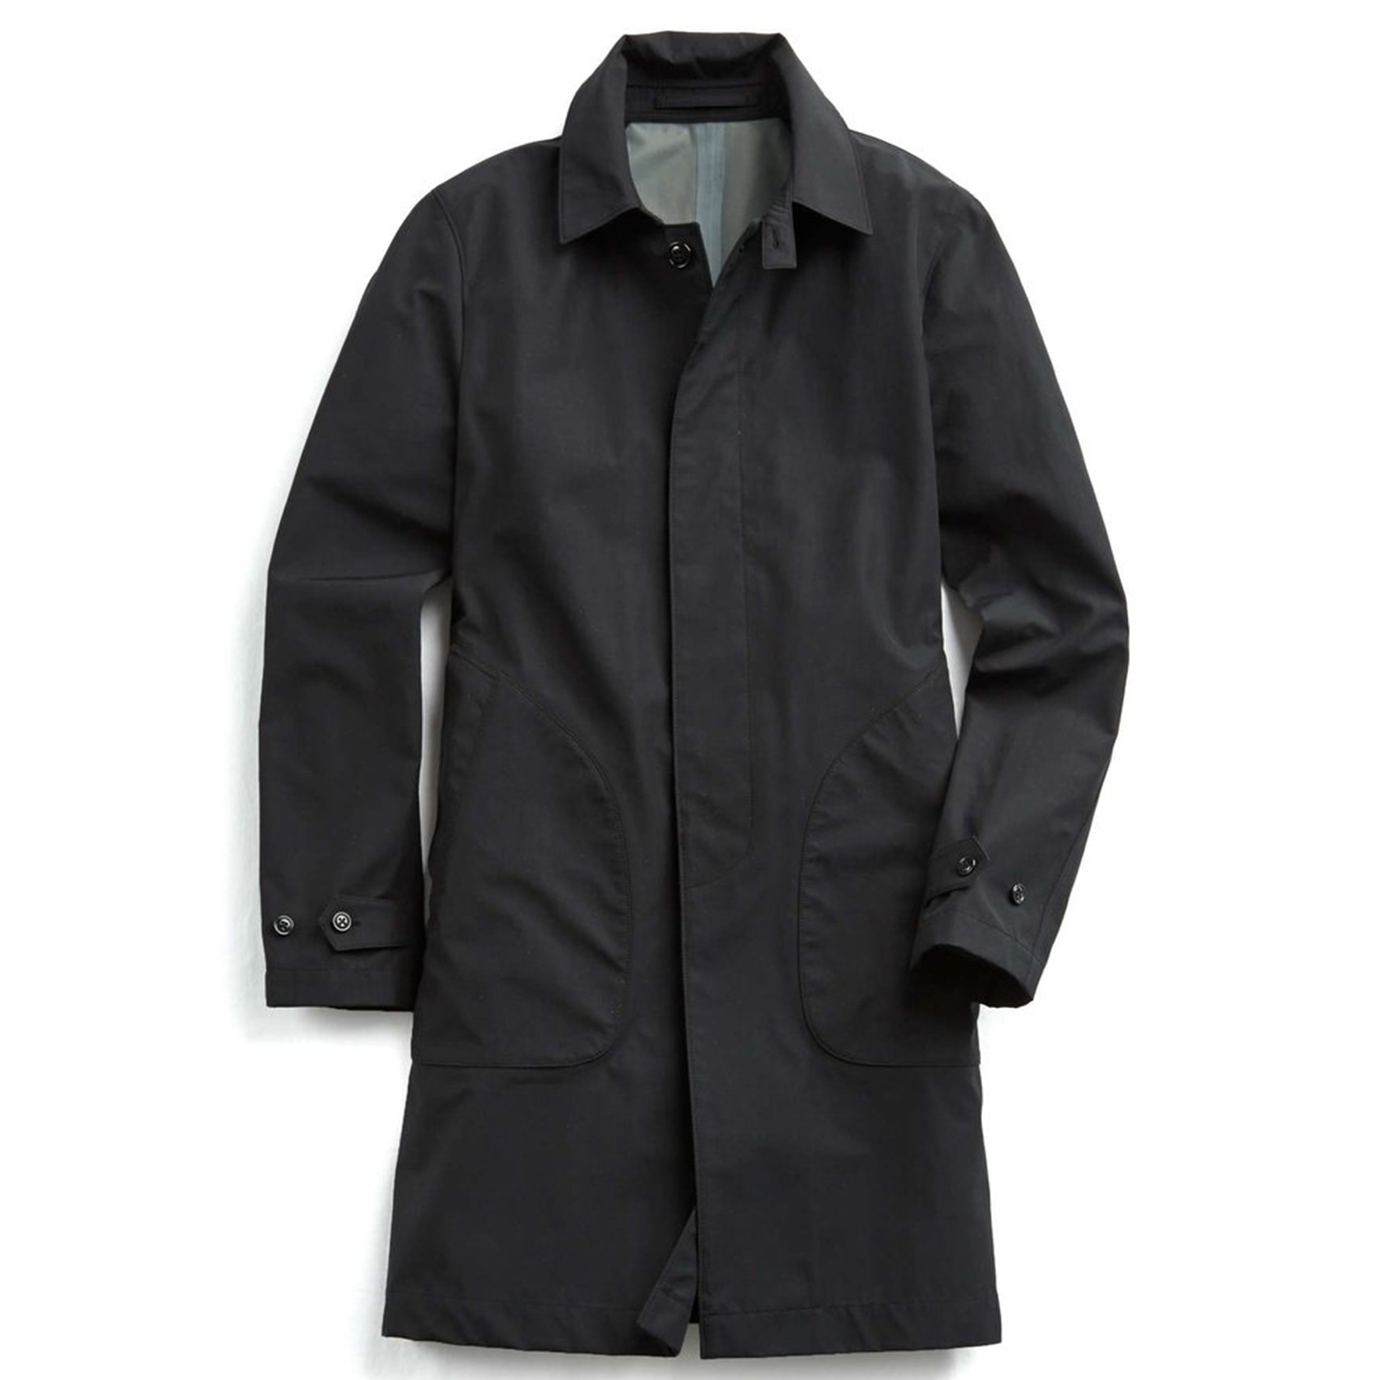 36189511c24a8 The 20 Coolest Rain Jackets for Men  Spring 2018